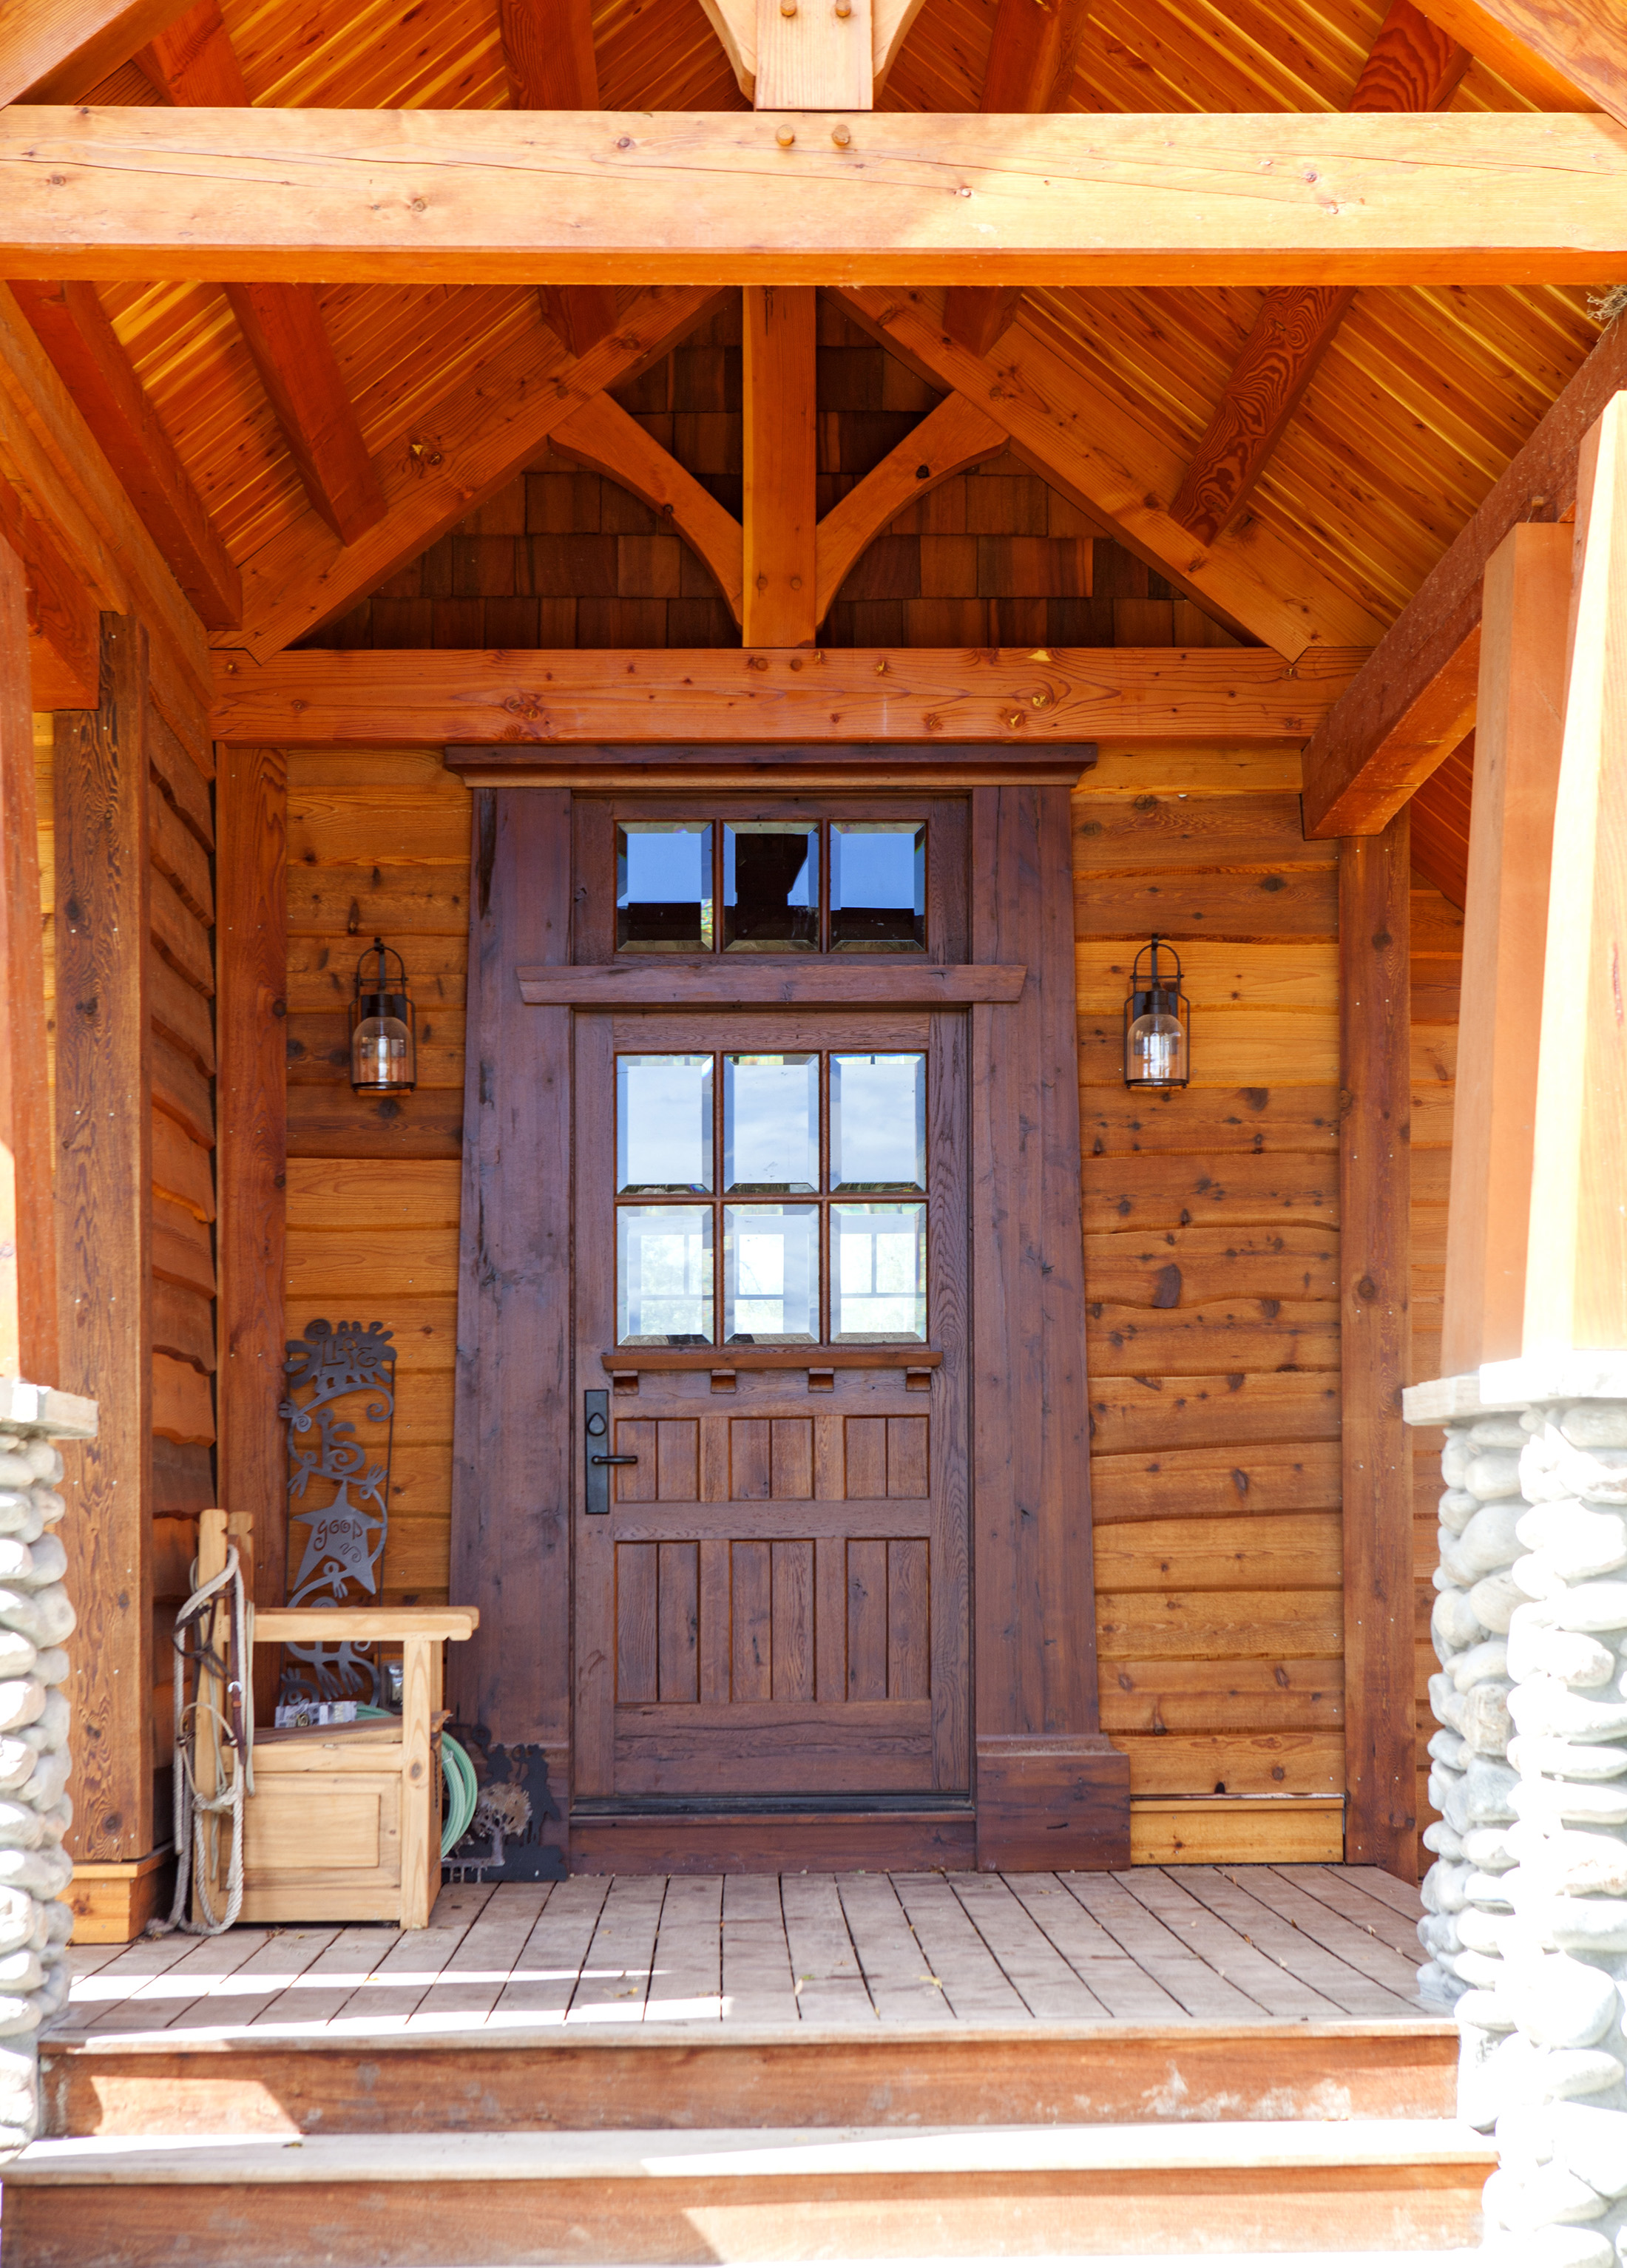 Entranceway to timber frame home made from reclaimed white oak